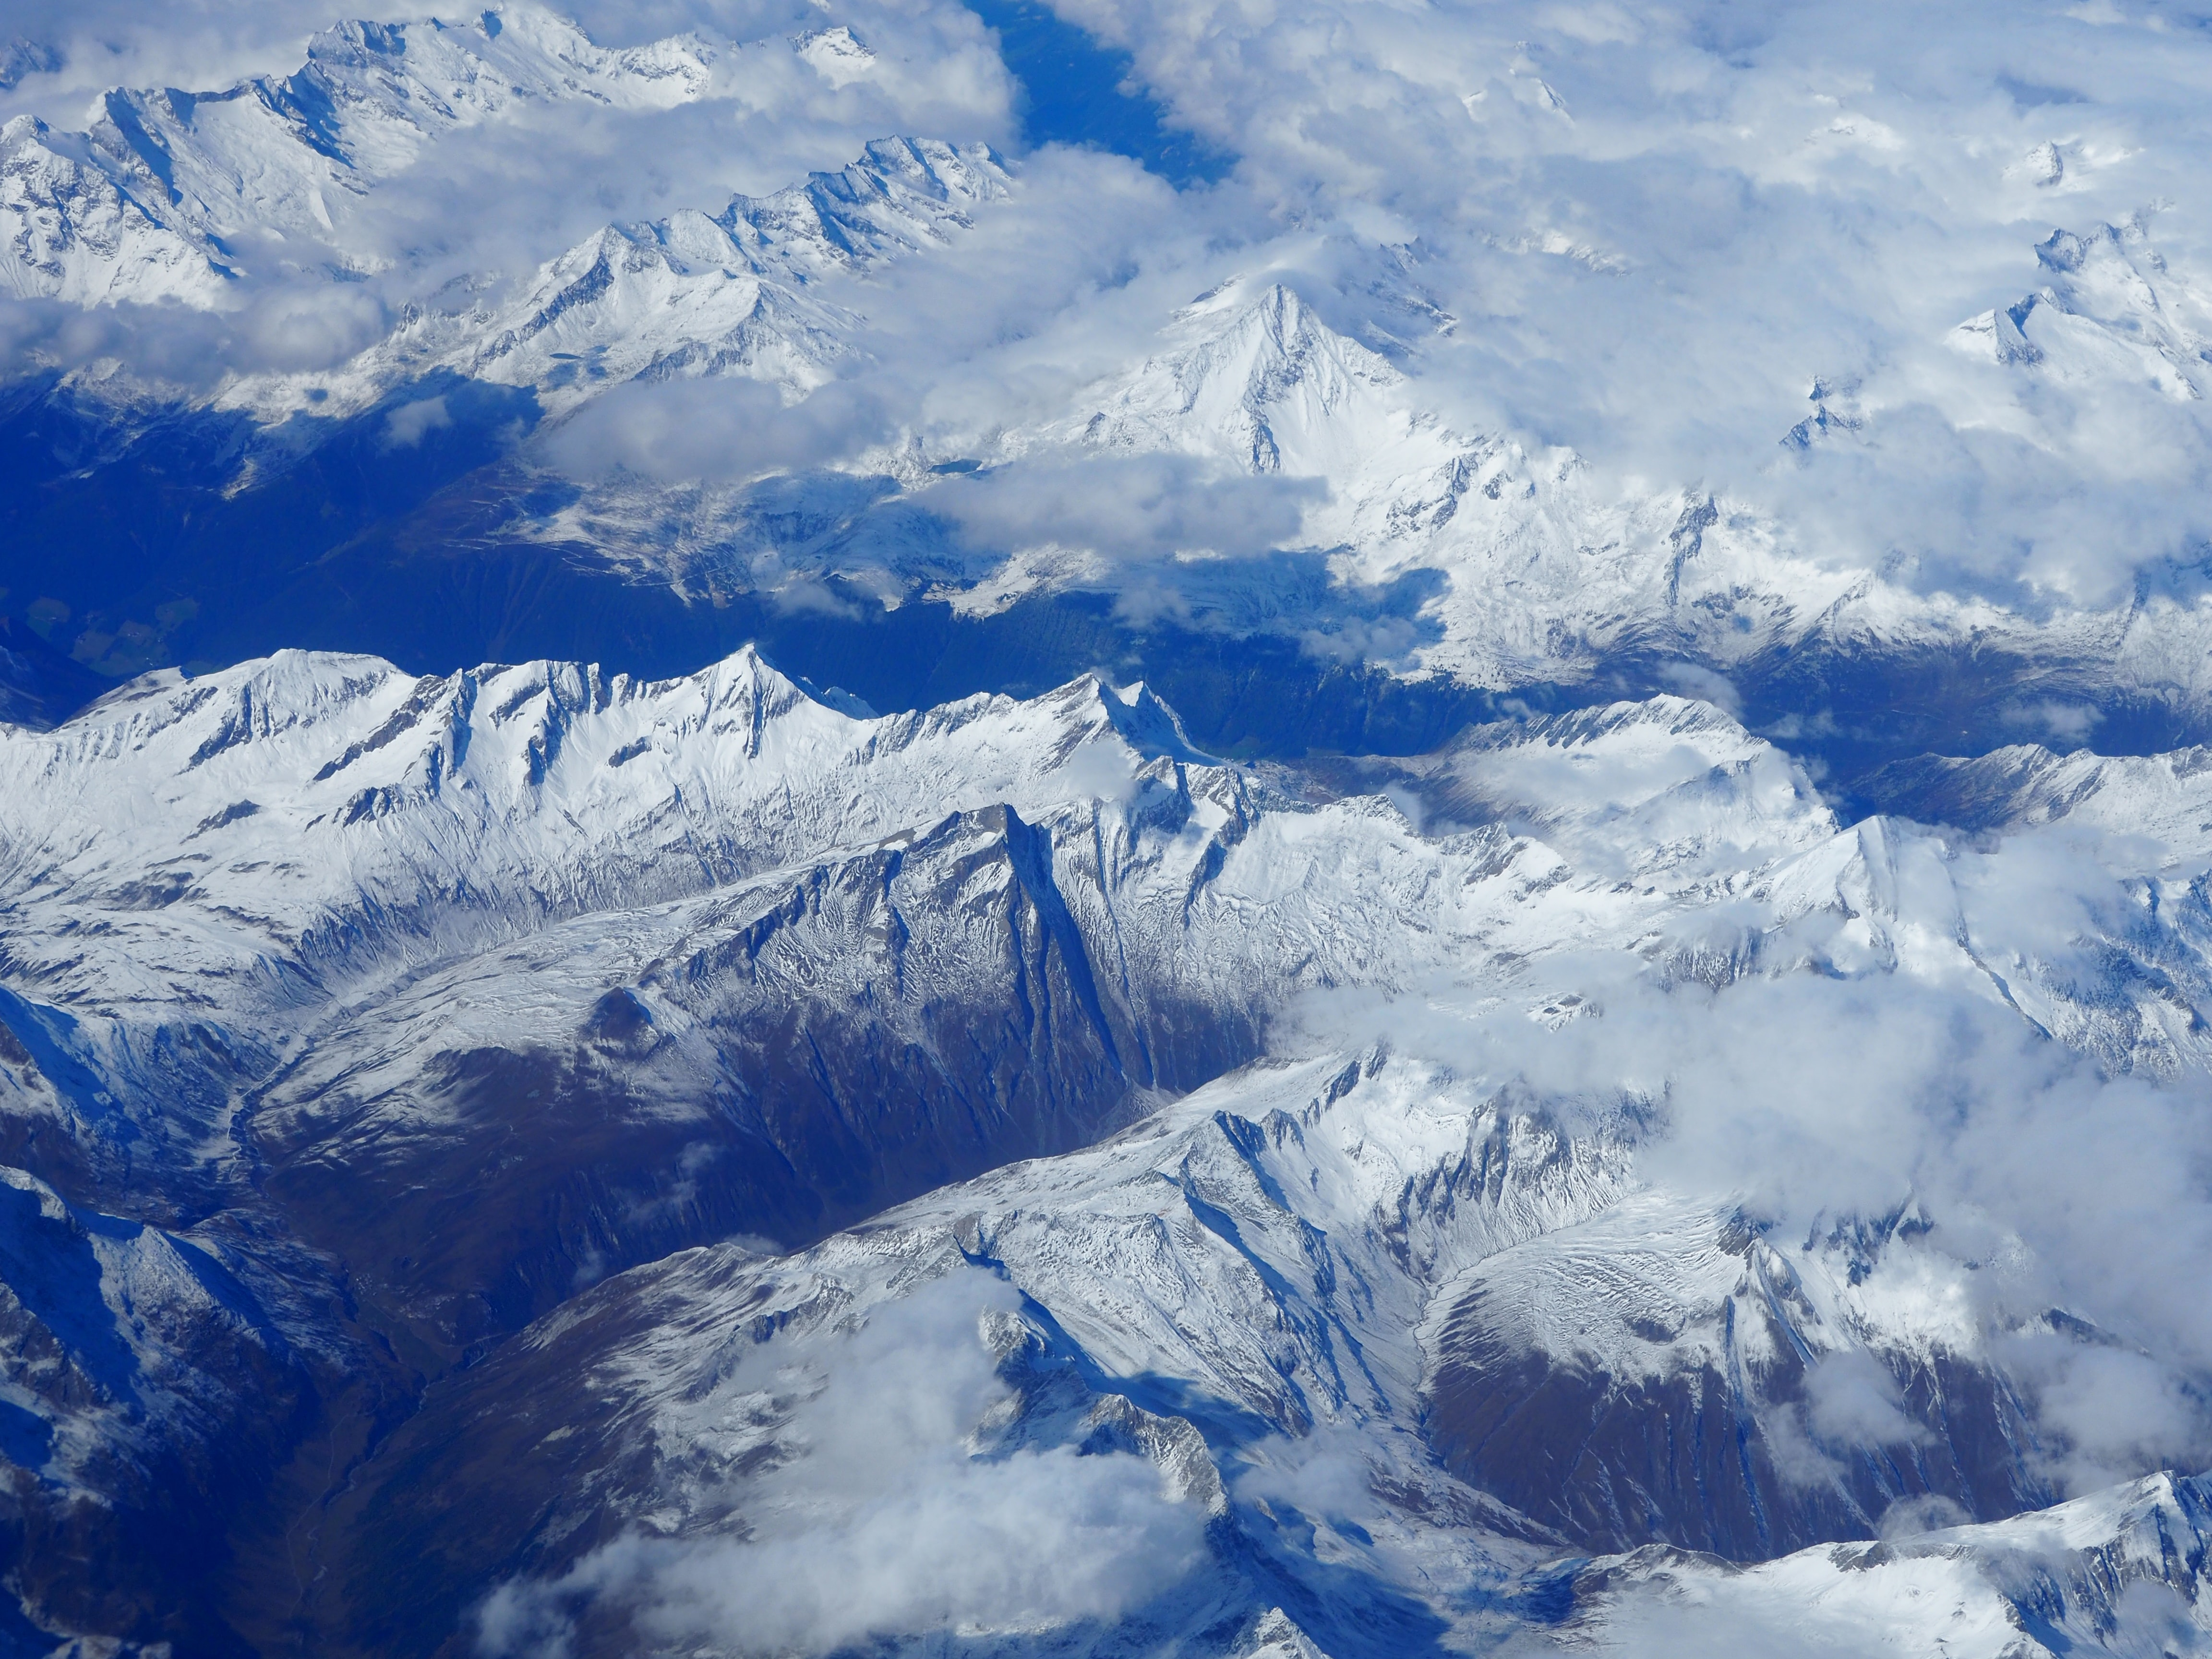 An aerial shot of an Alpine mountain range under a cover of clouds